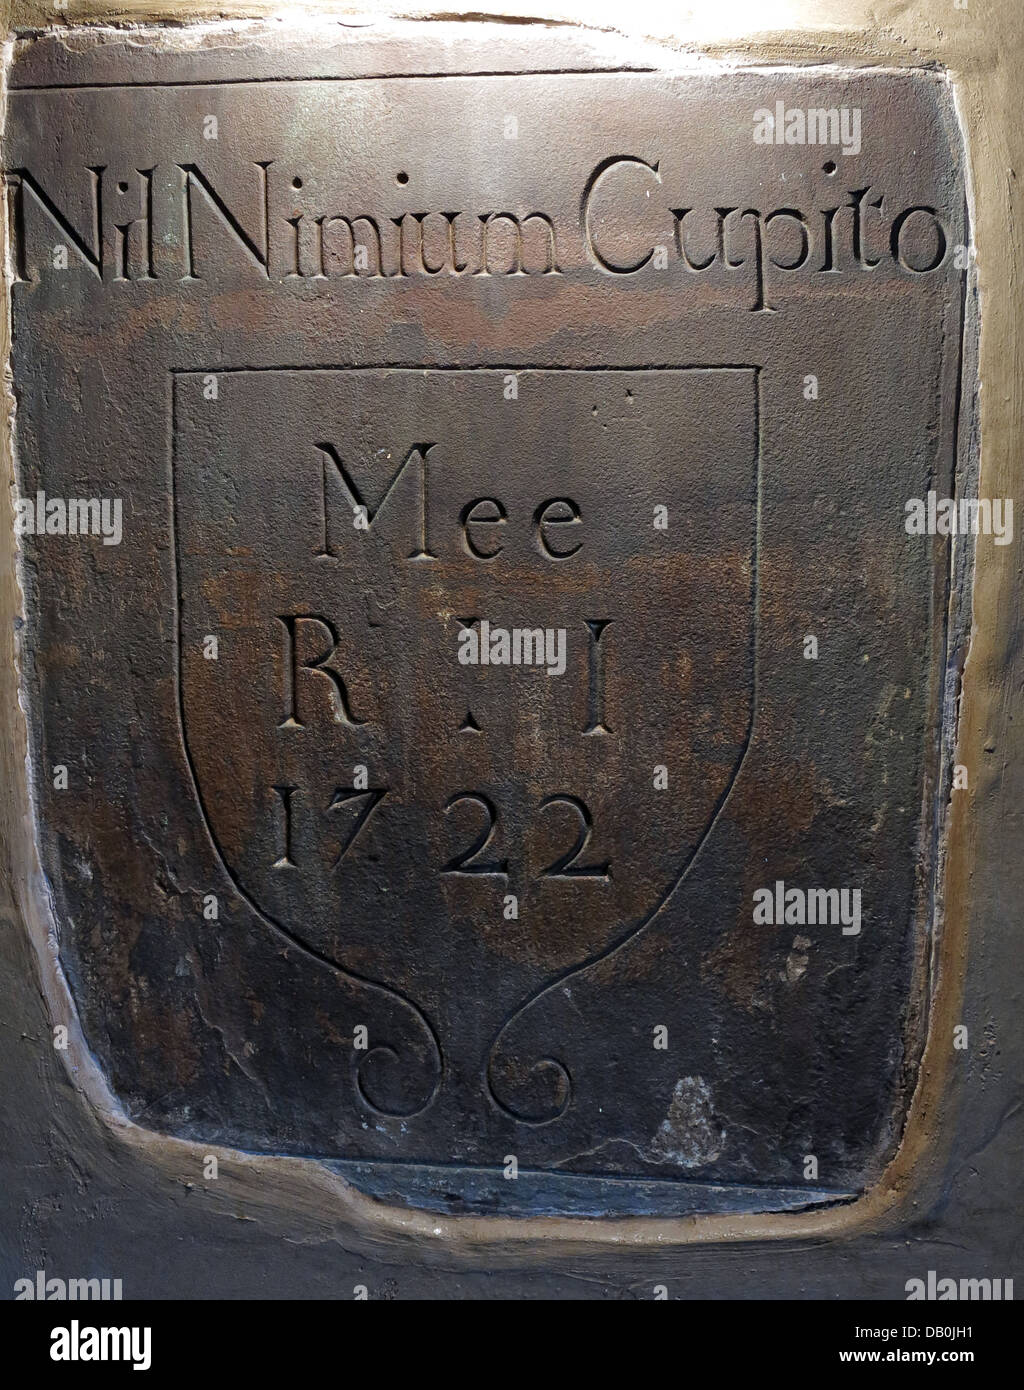 Inscription from stonework in the George & Dragon Inn, Great Budworth Nil Nimium Cupito Mee 1722 - Stock Image